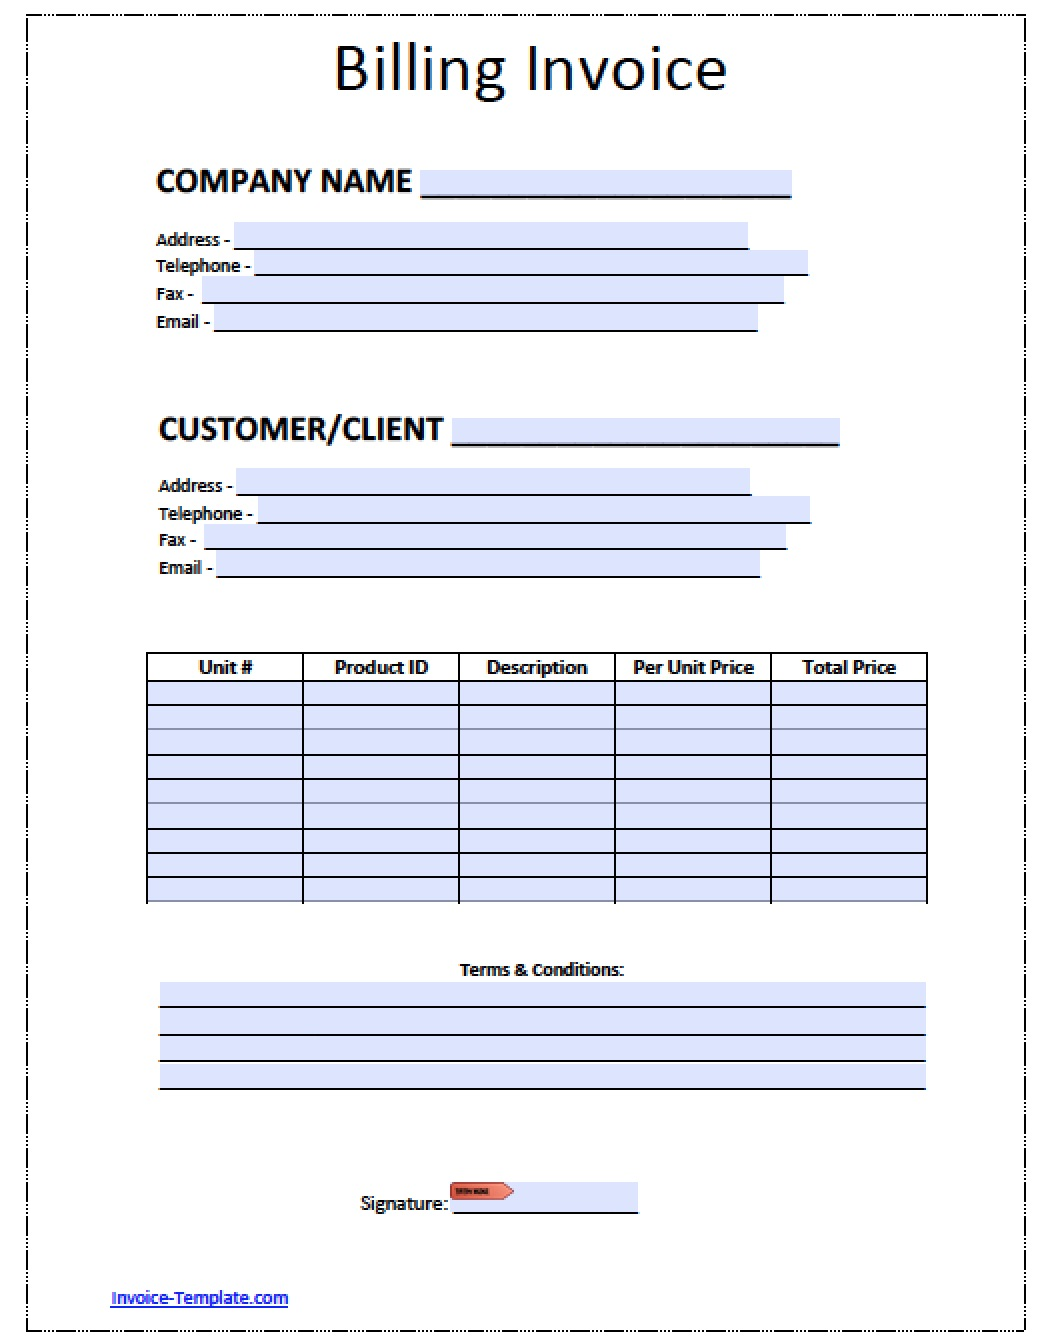 Free Blank Invoice Templates In PDF Word Excel - Copy of blank invoice